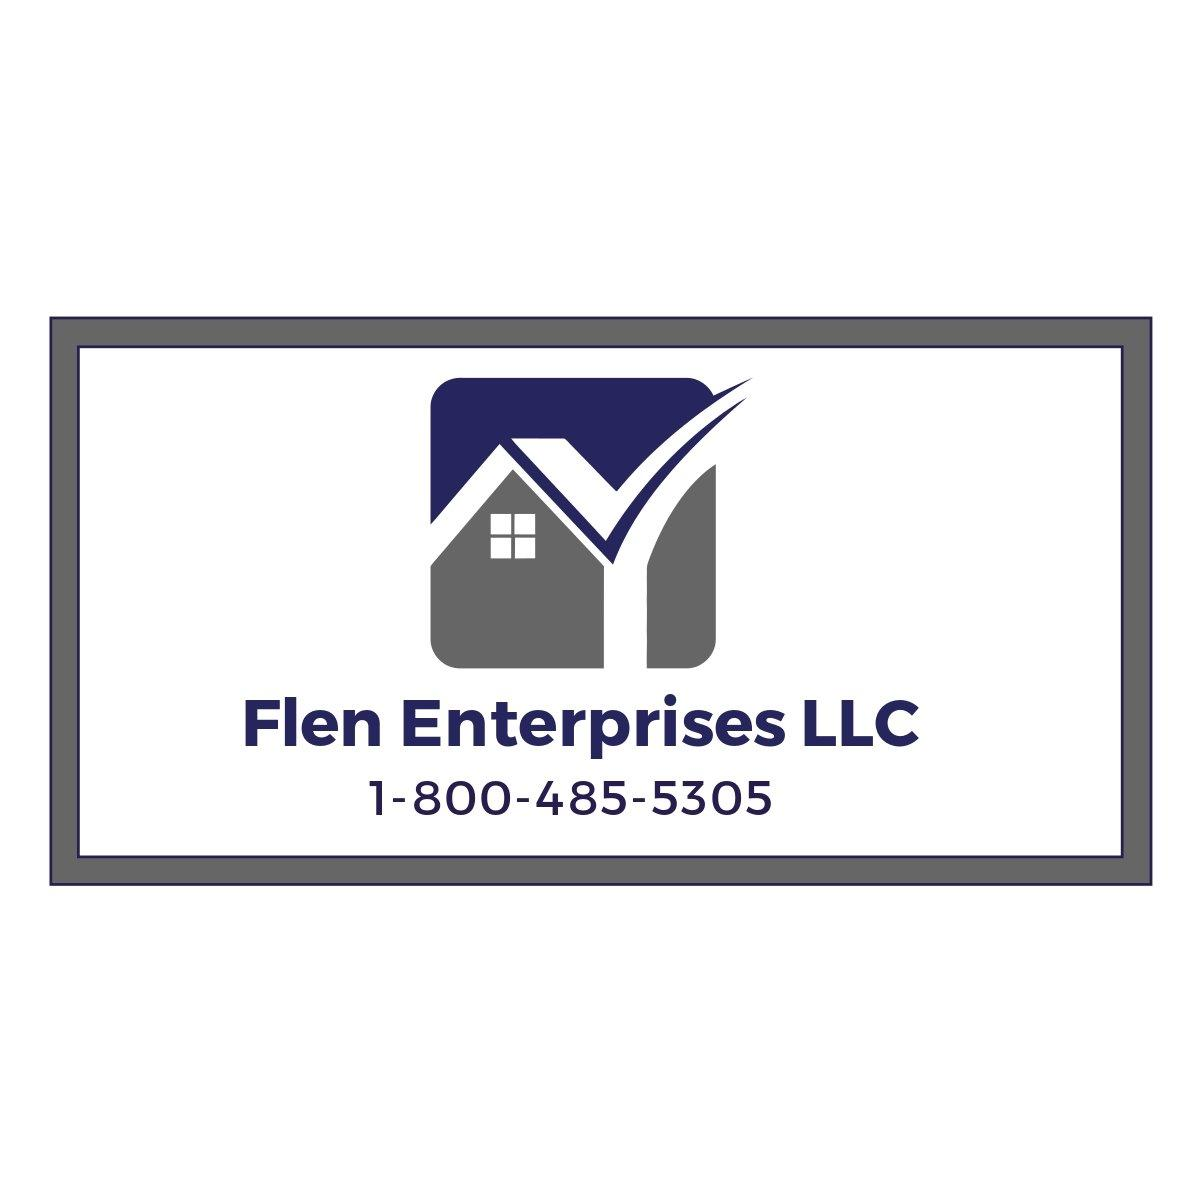 Flen Enterprises